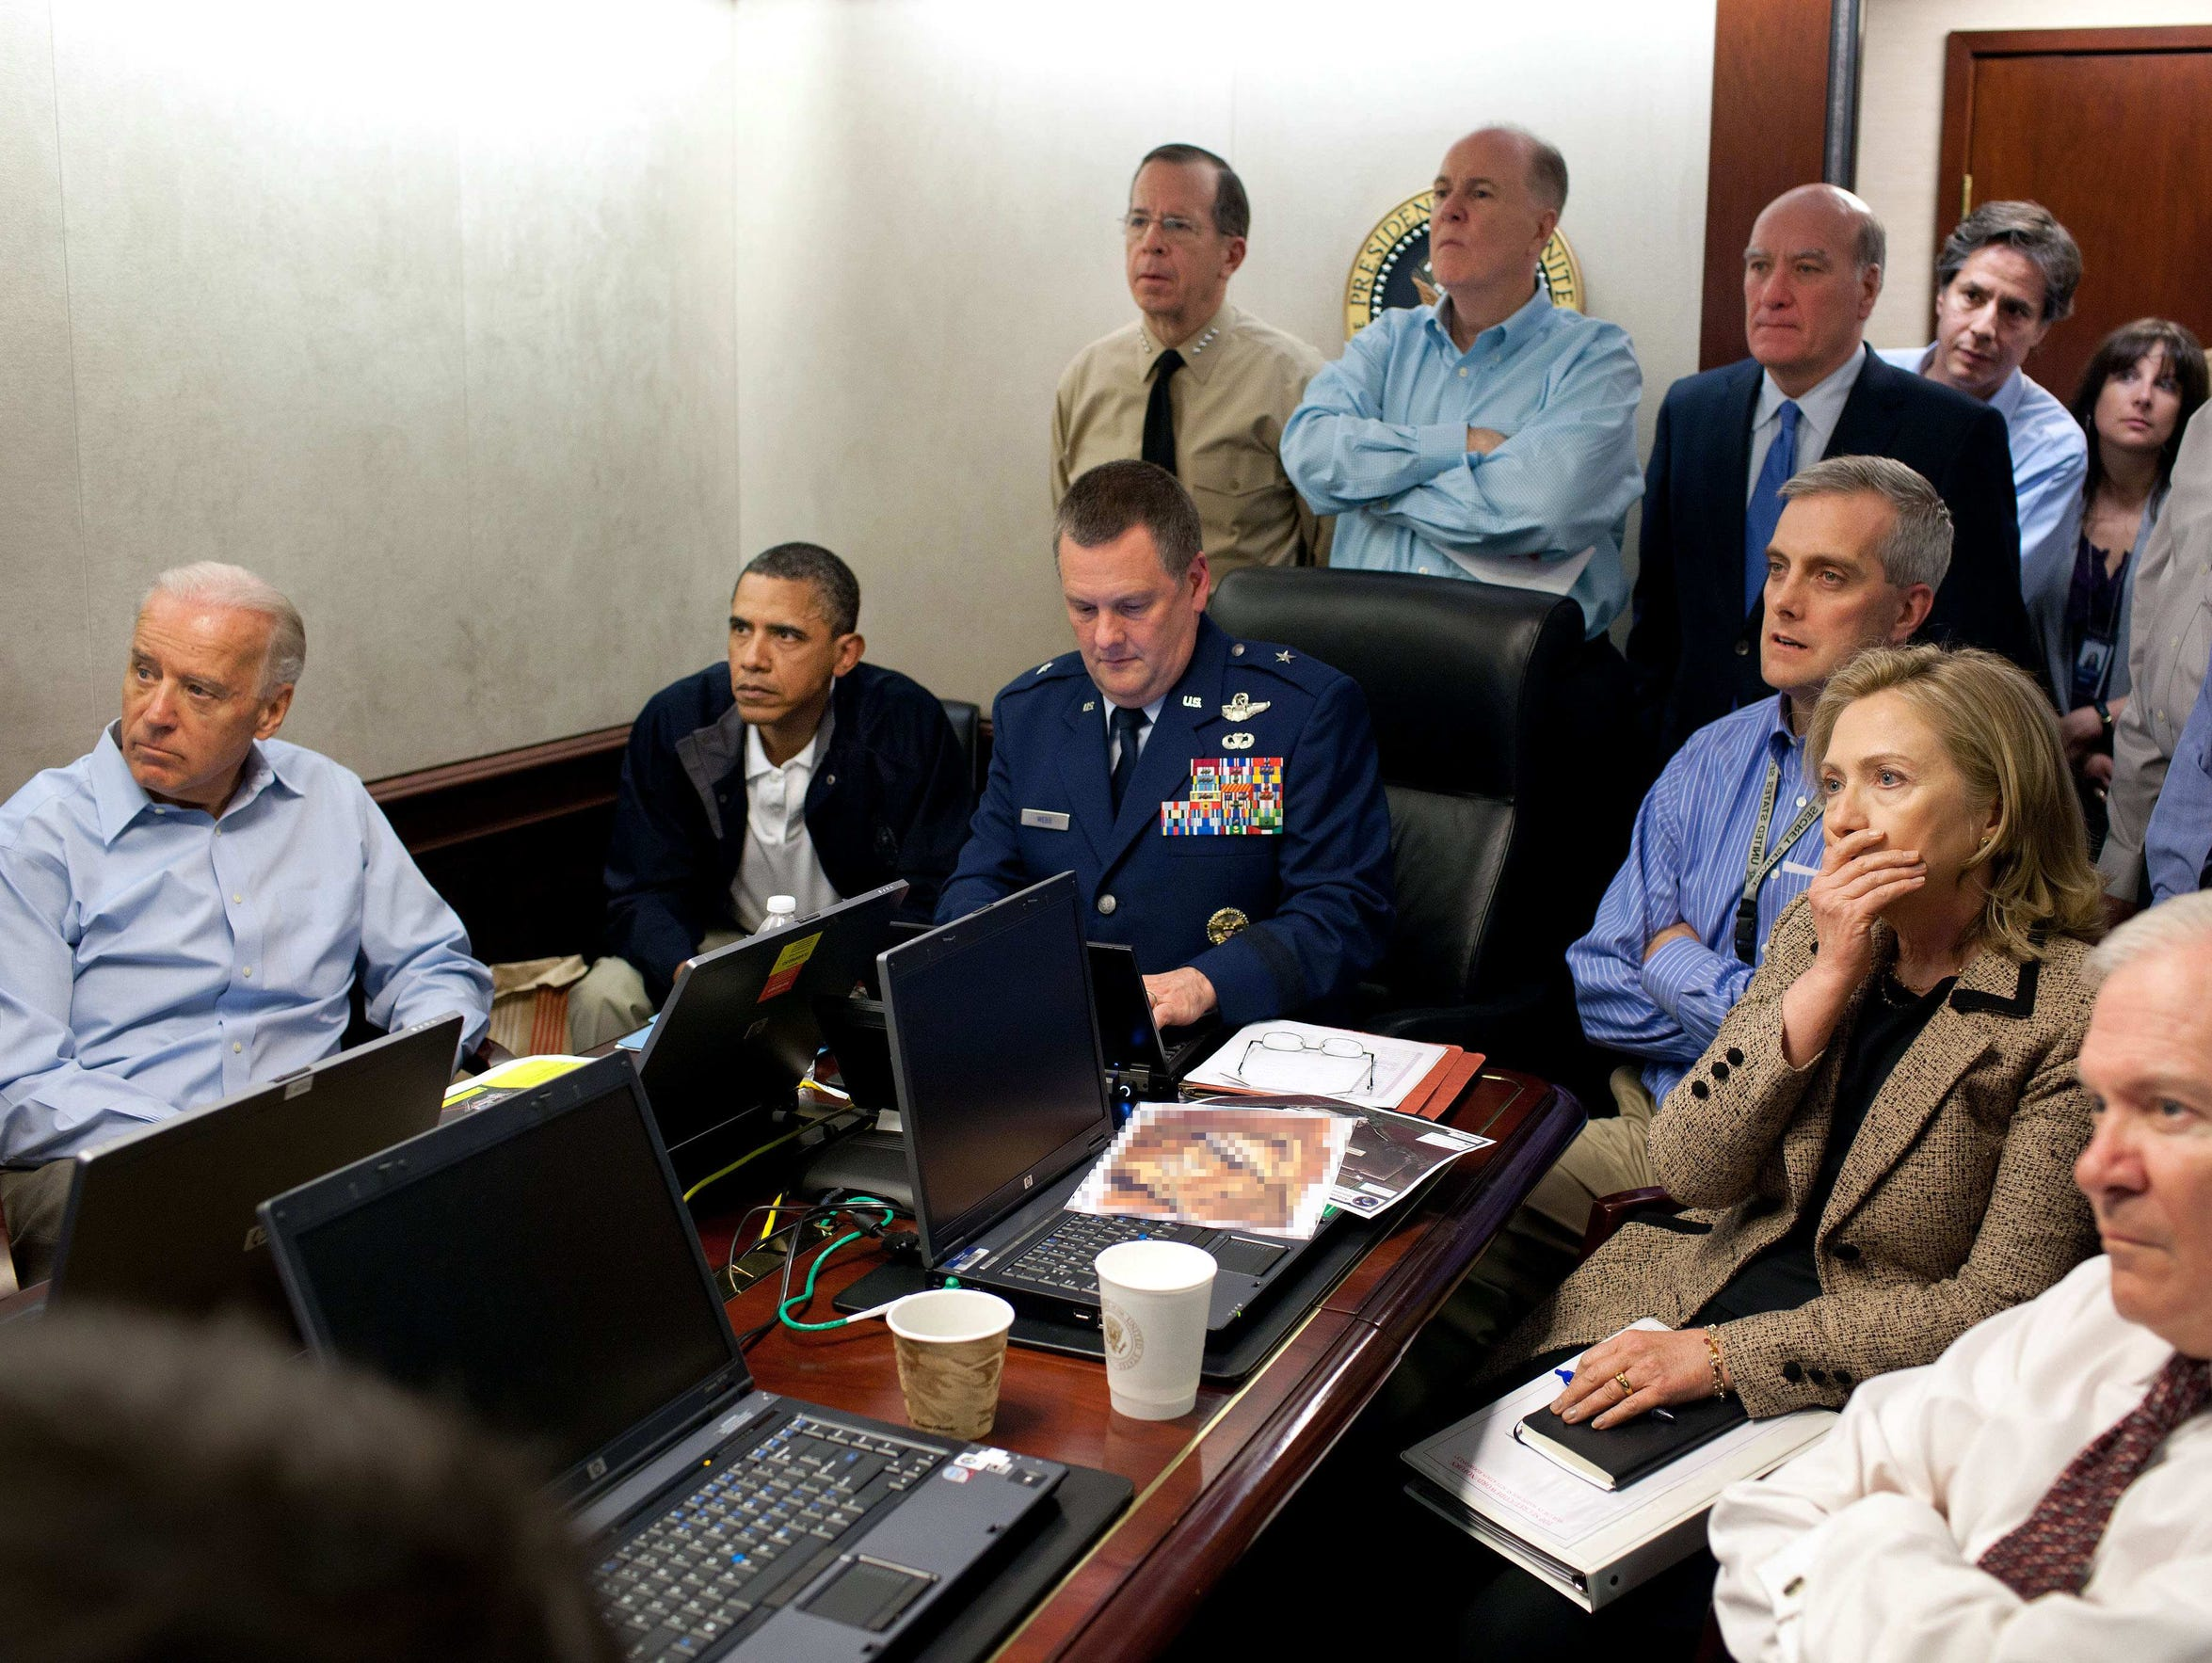 In this May 1, 2011, image released by the White House